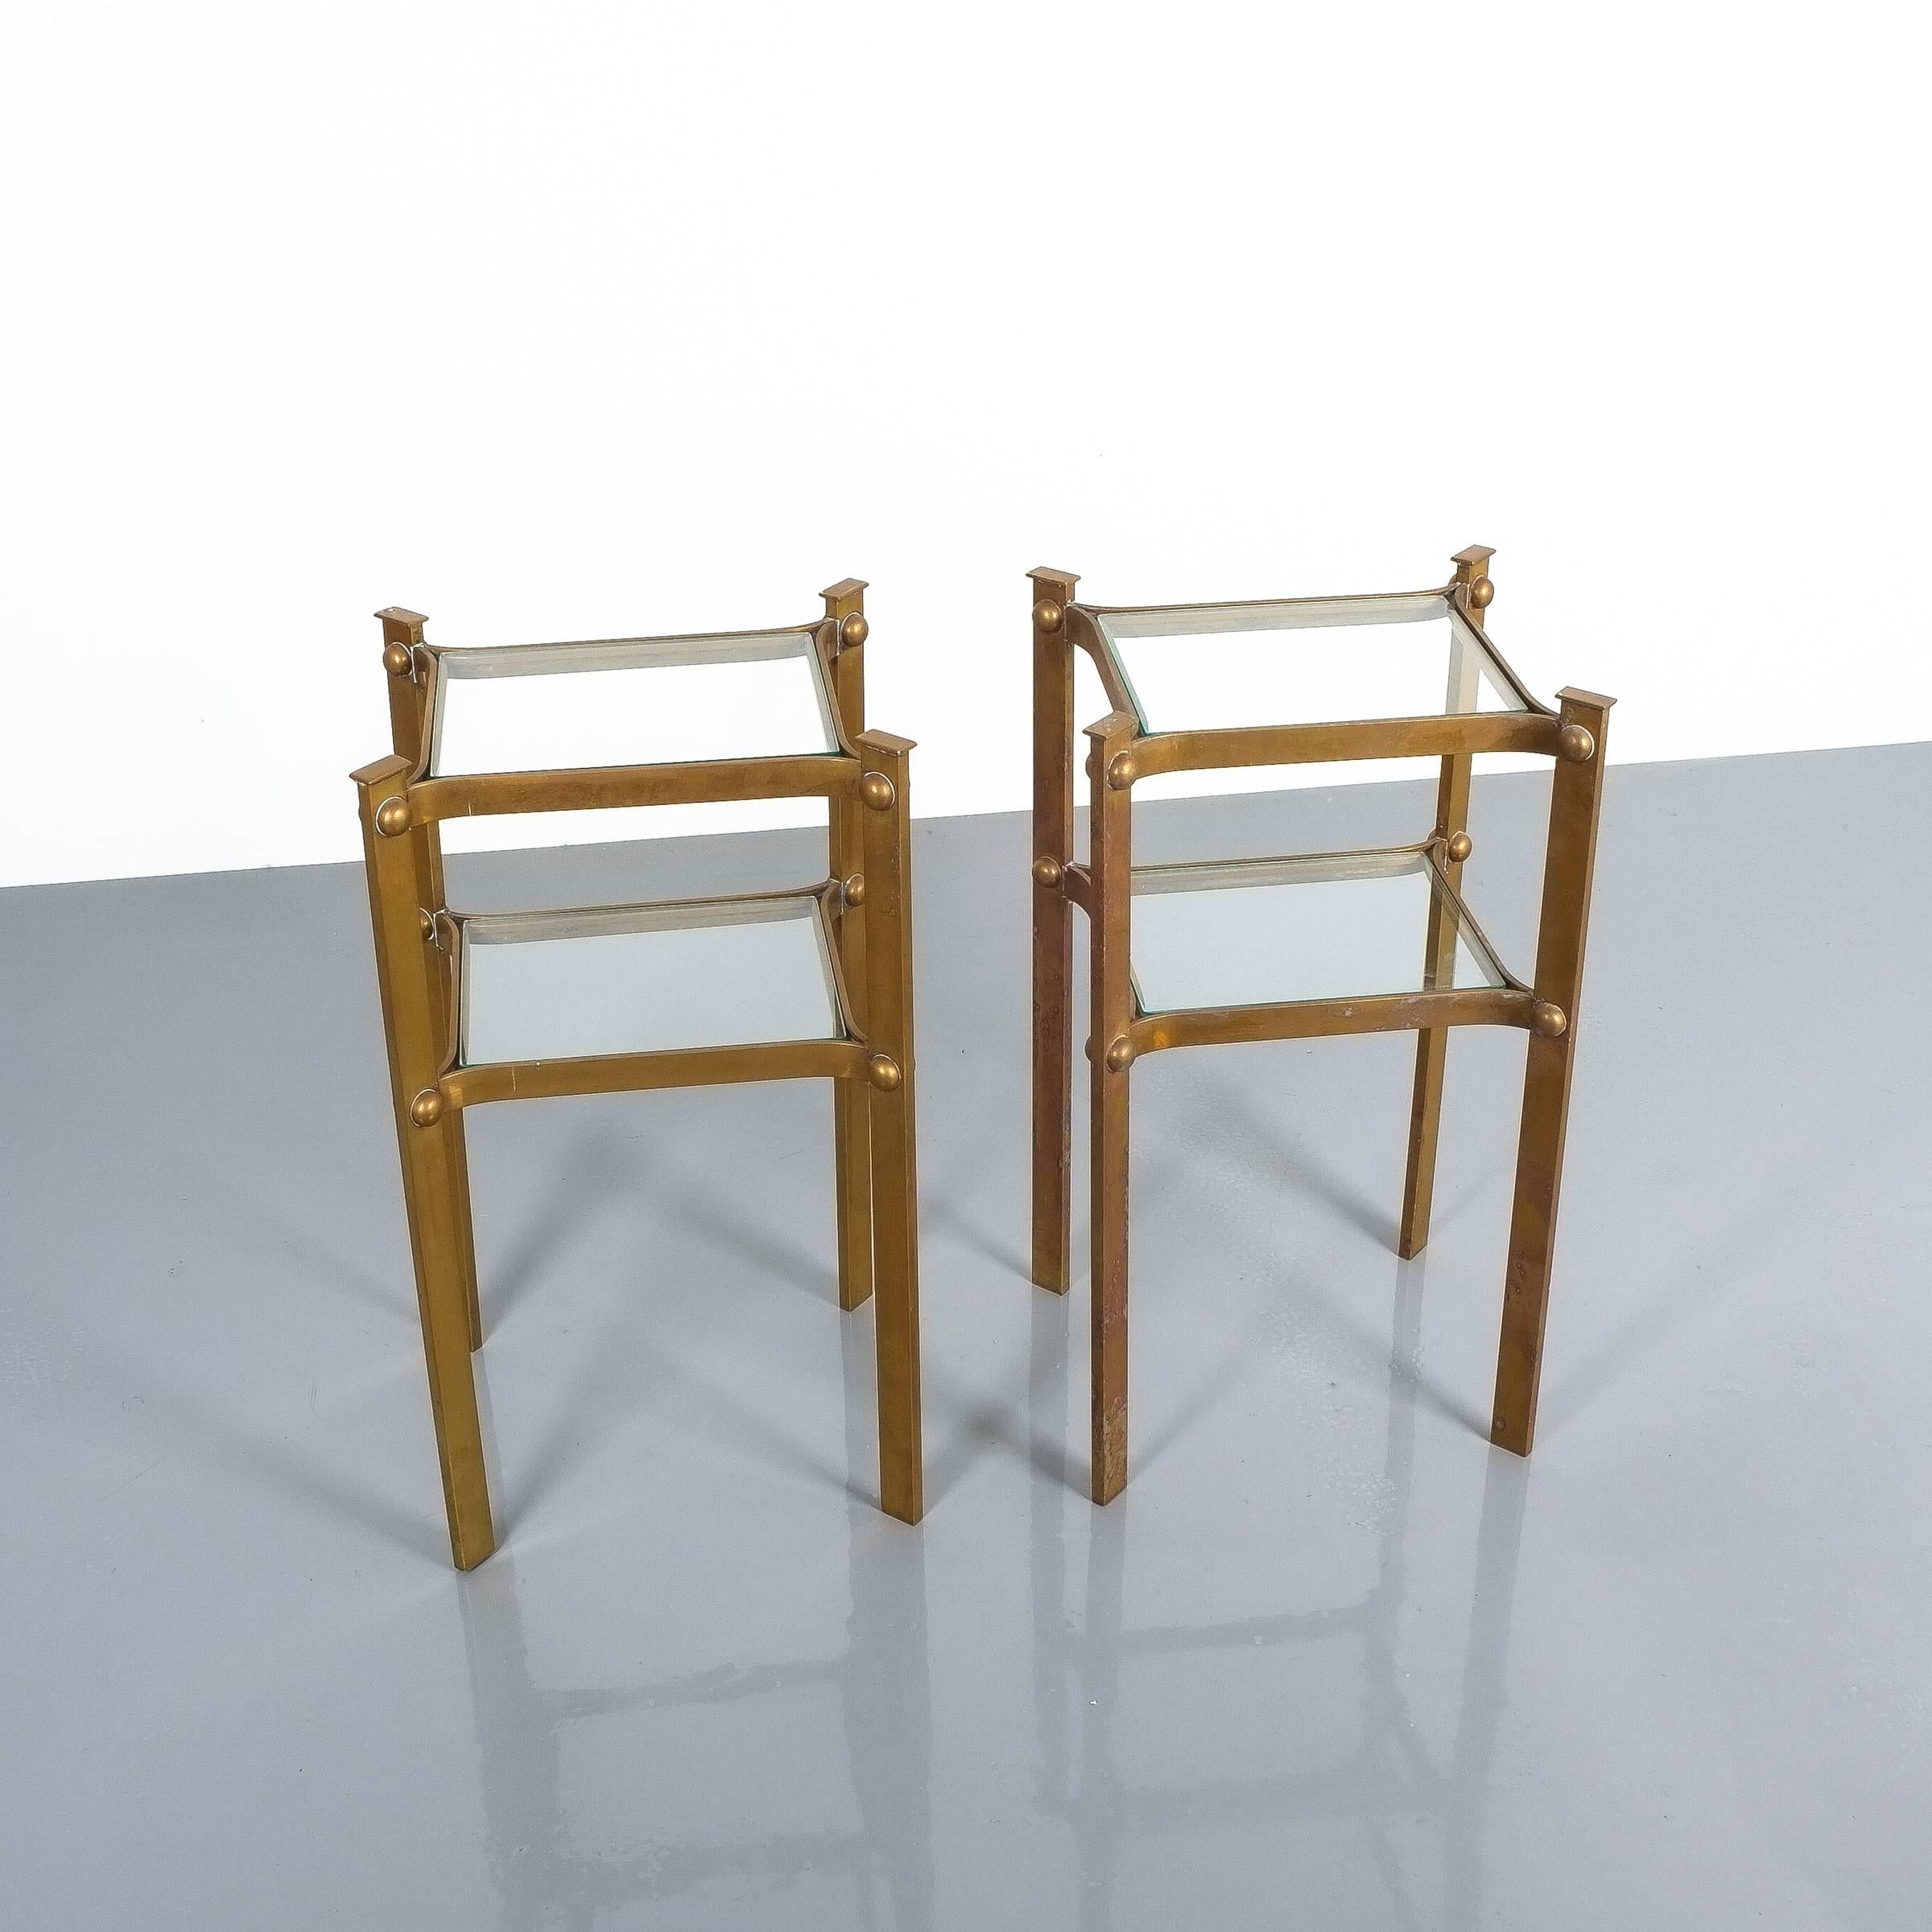 Cute Brass Side Tables with Glass Tops, France, 1940 For